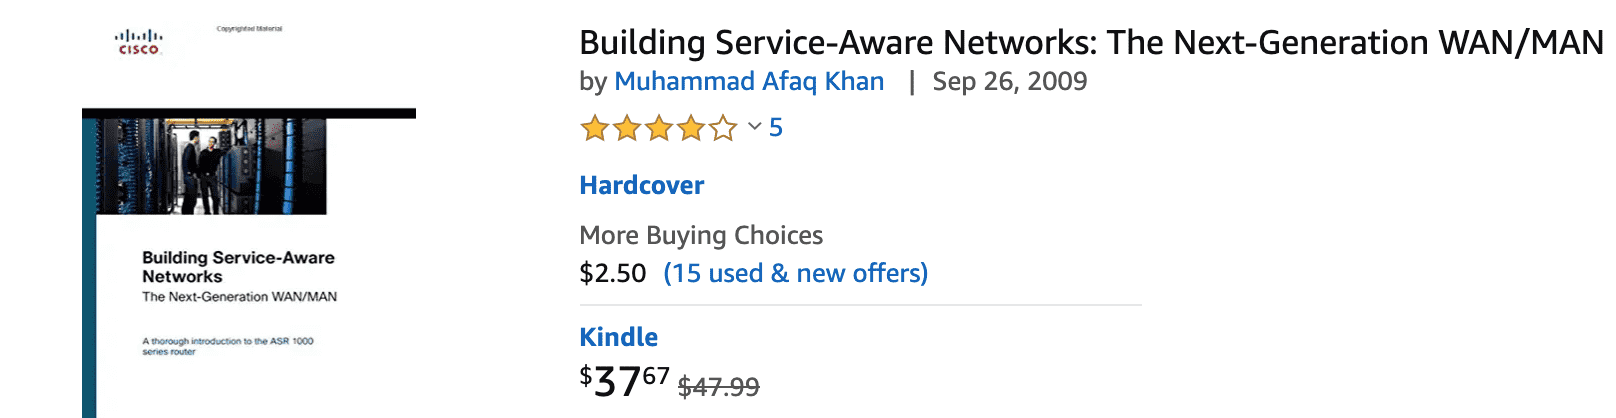 building service-aware networks